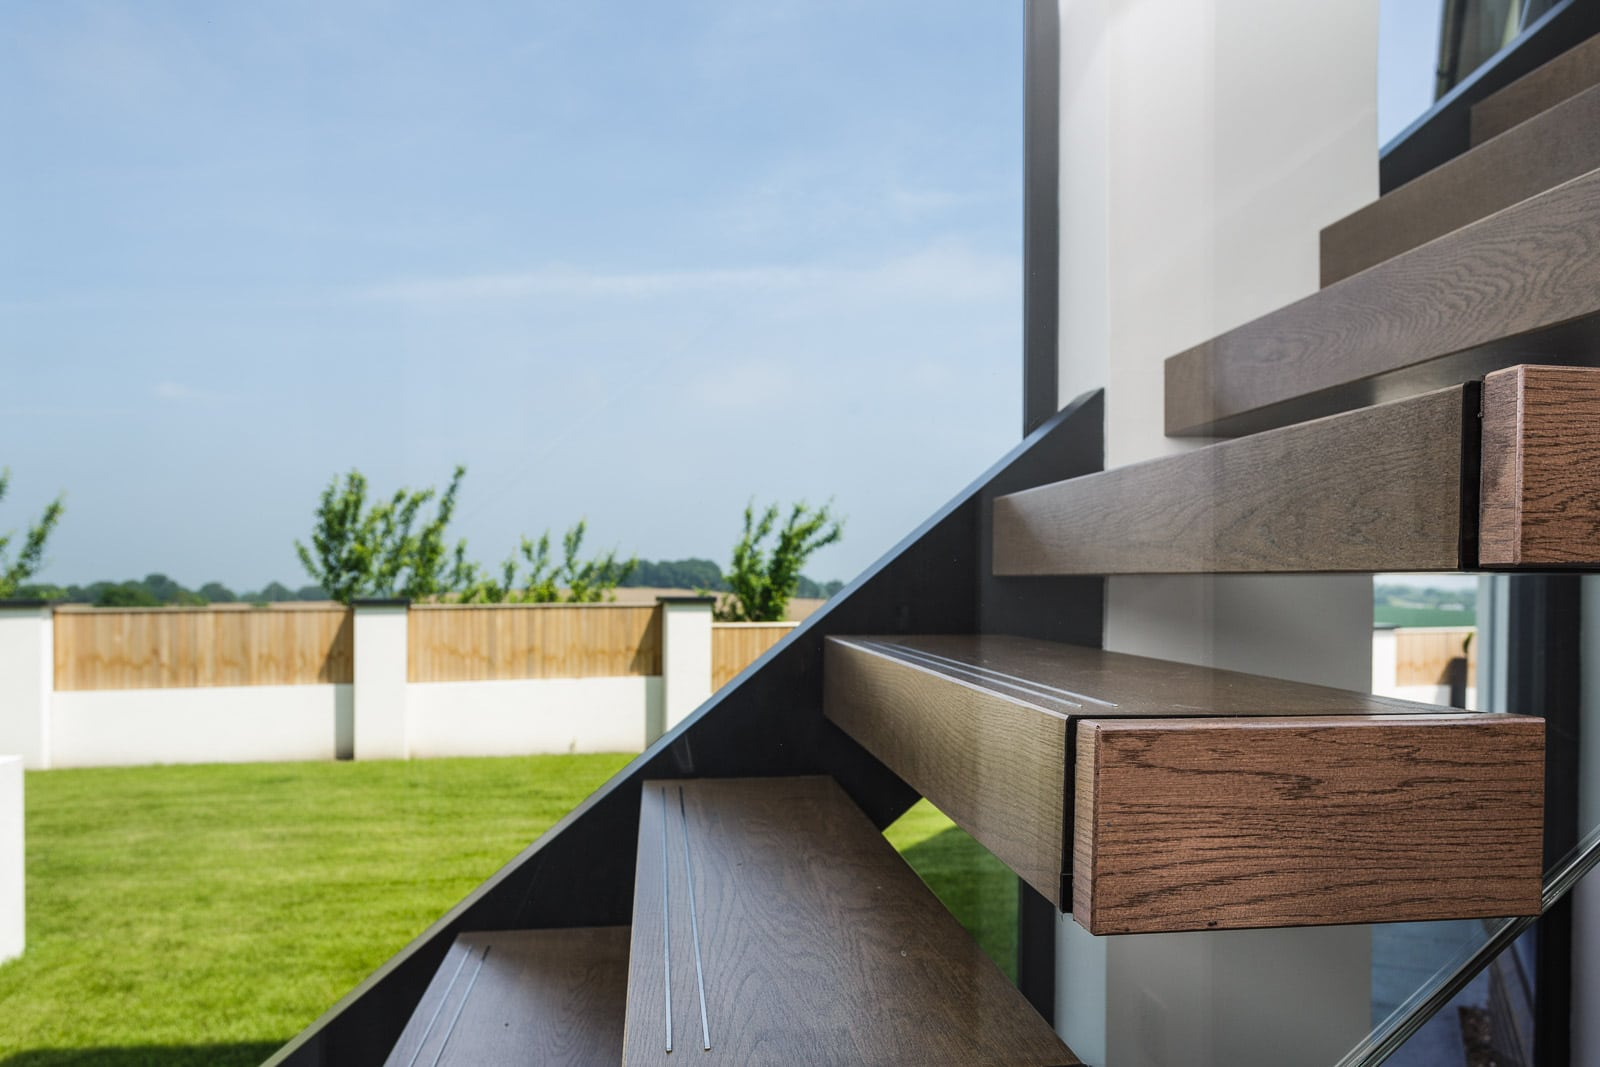 Feature staircase treads against glass wall with view to garden